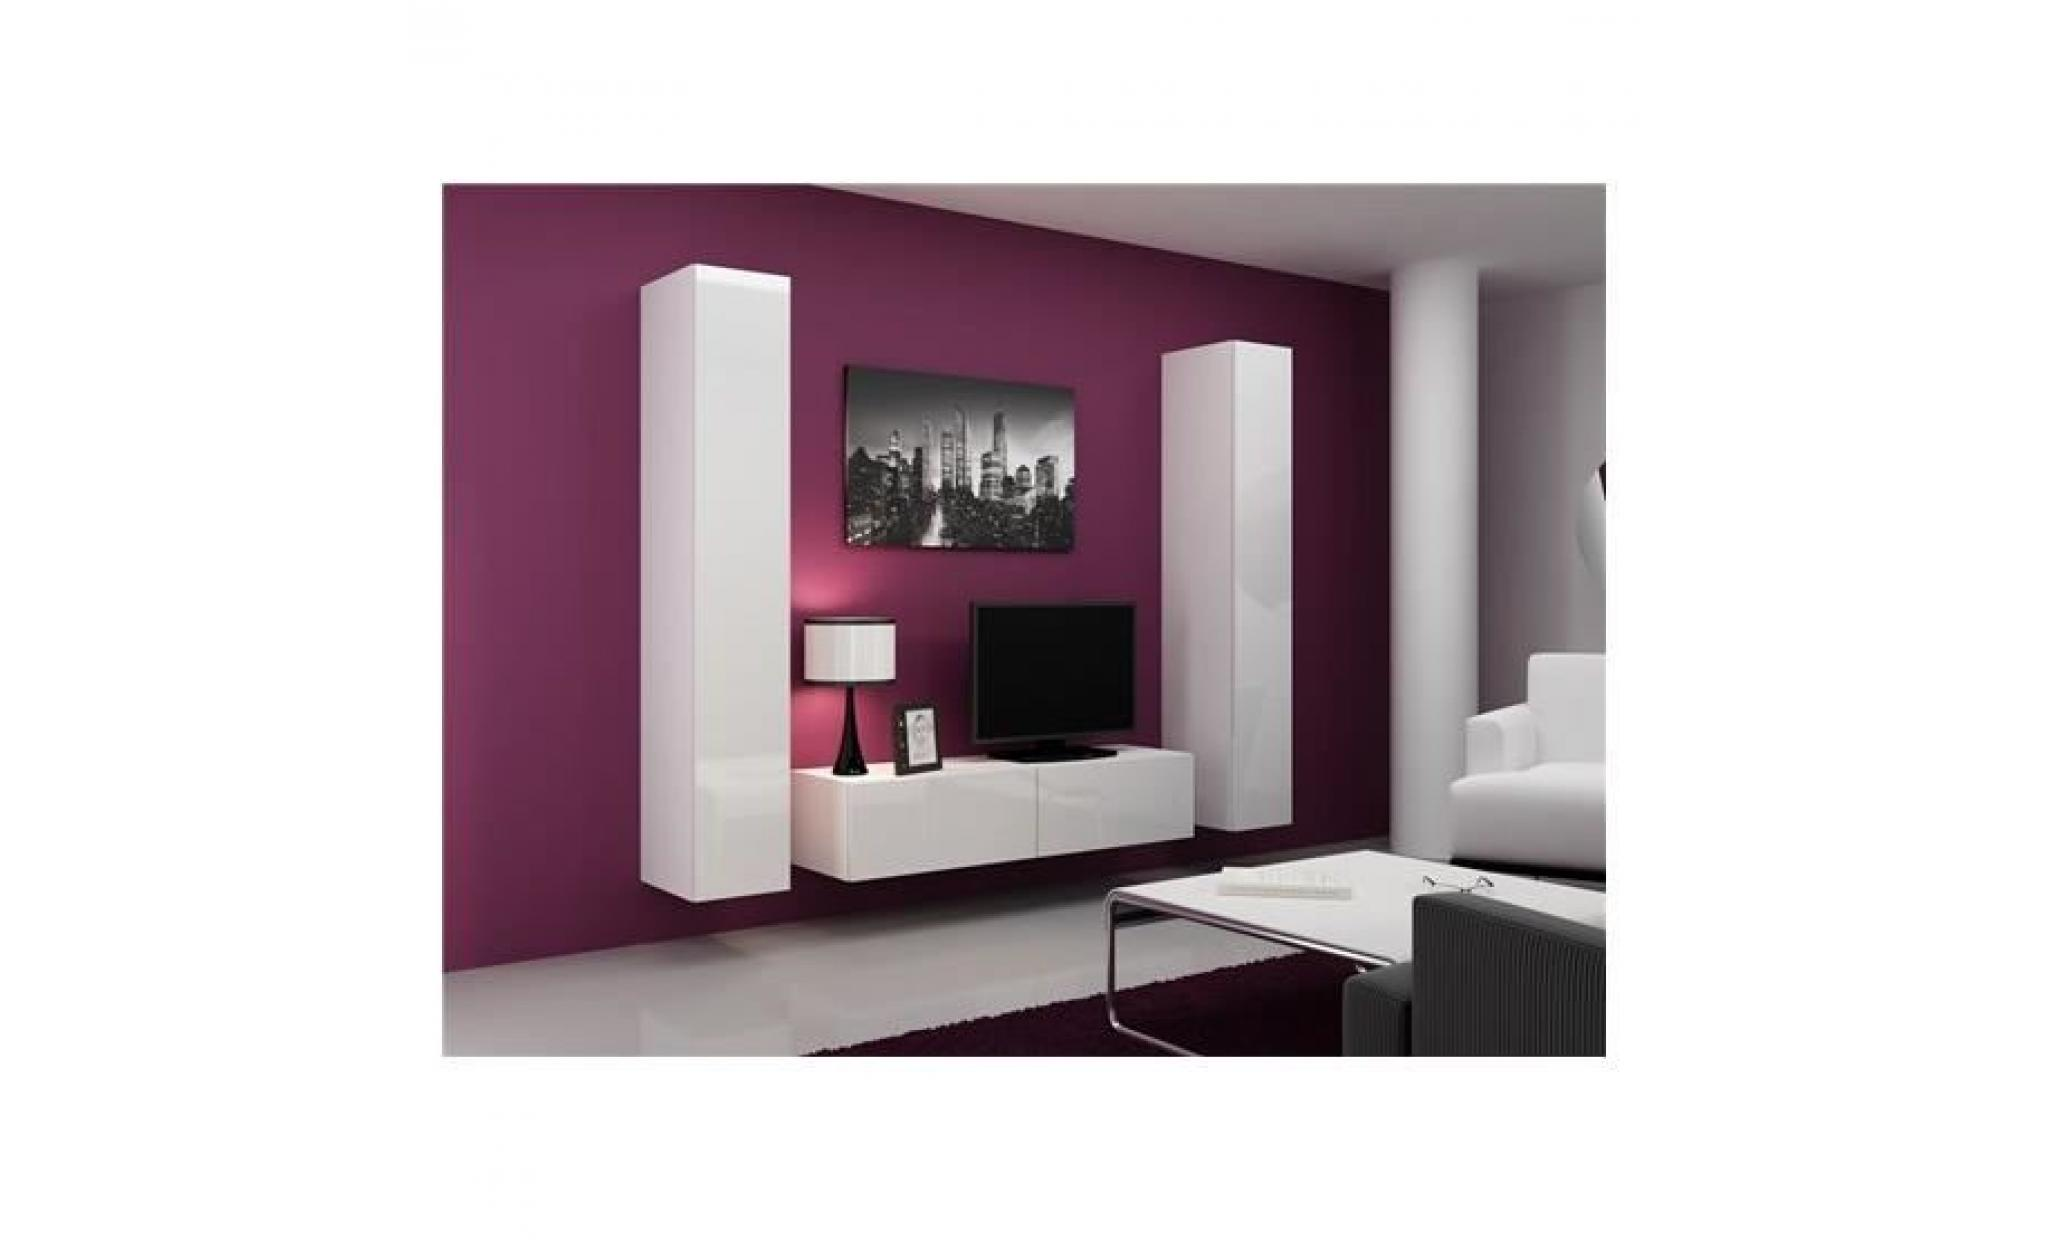 Meuble tv design suspendu vini blanc achat vente meuble for Vente meuble salon